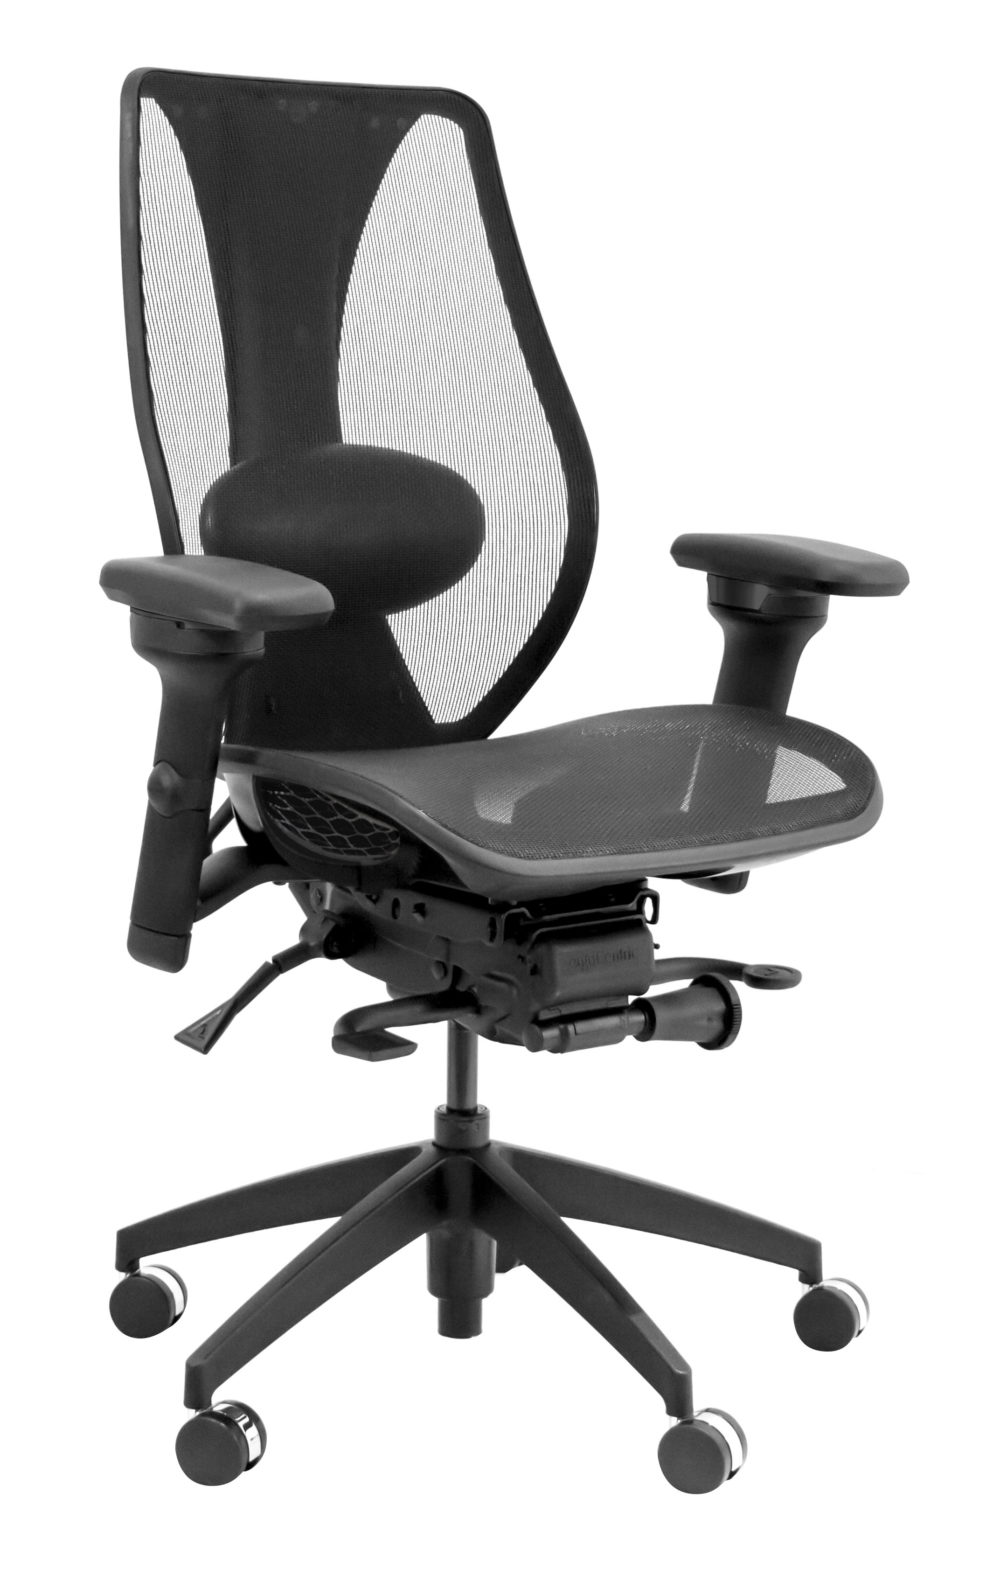 Tcentric hybrid ergonomic chair buy rite business for Chair design ergonomics